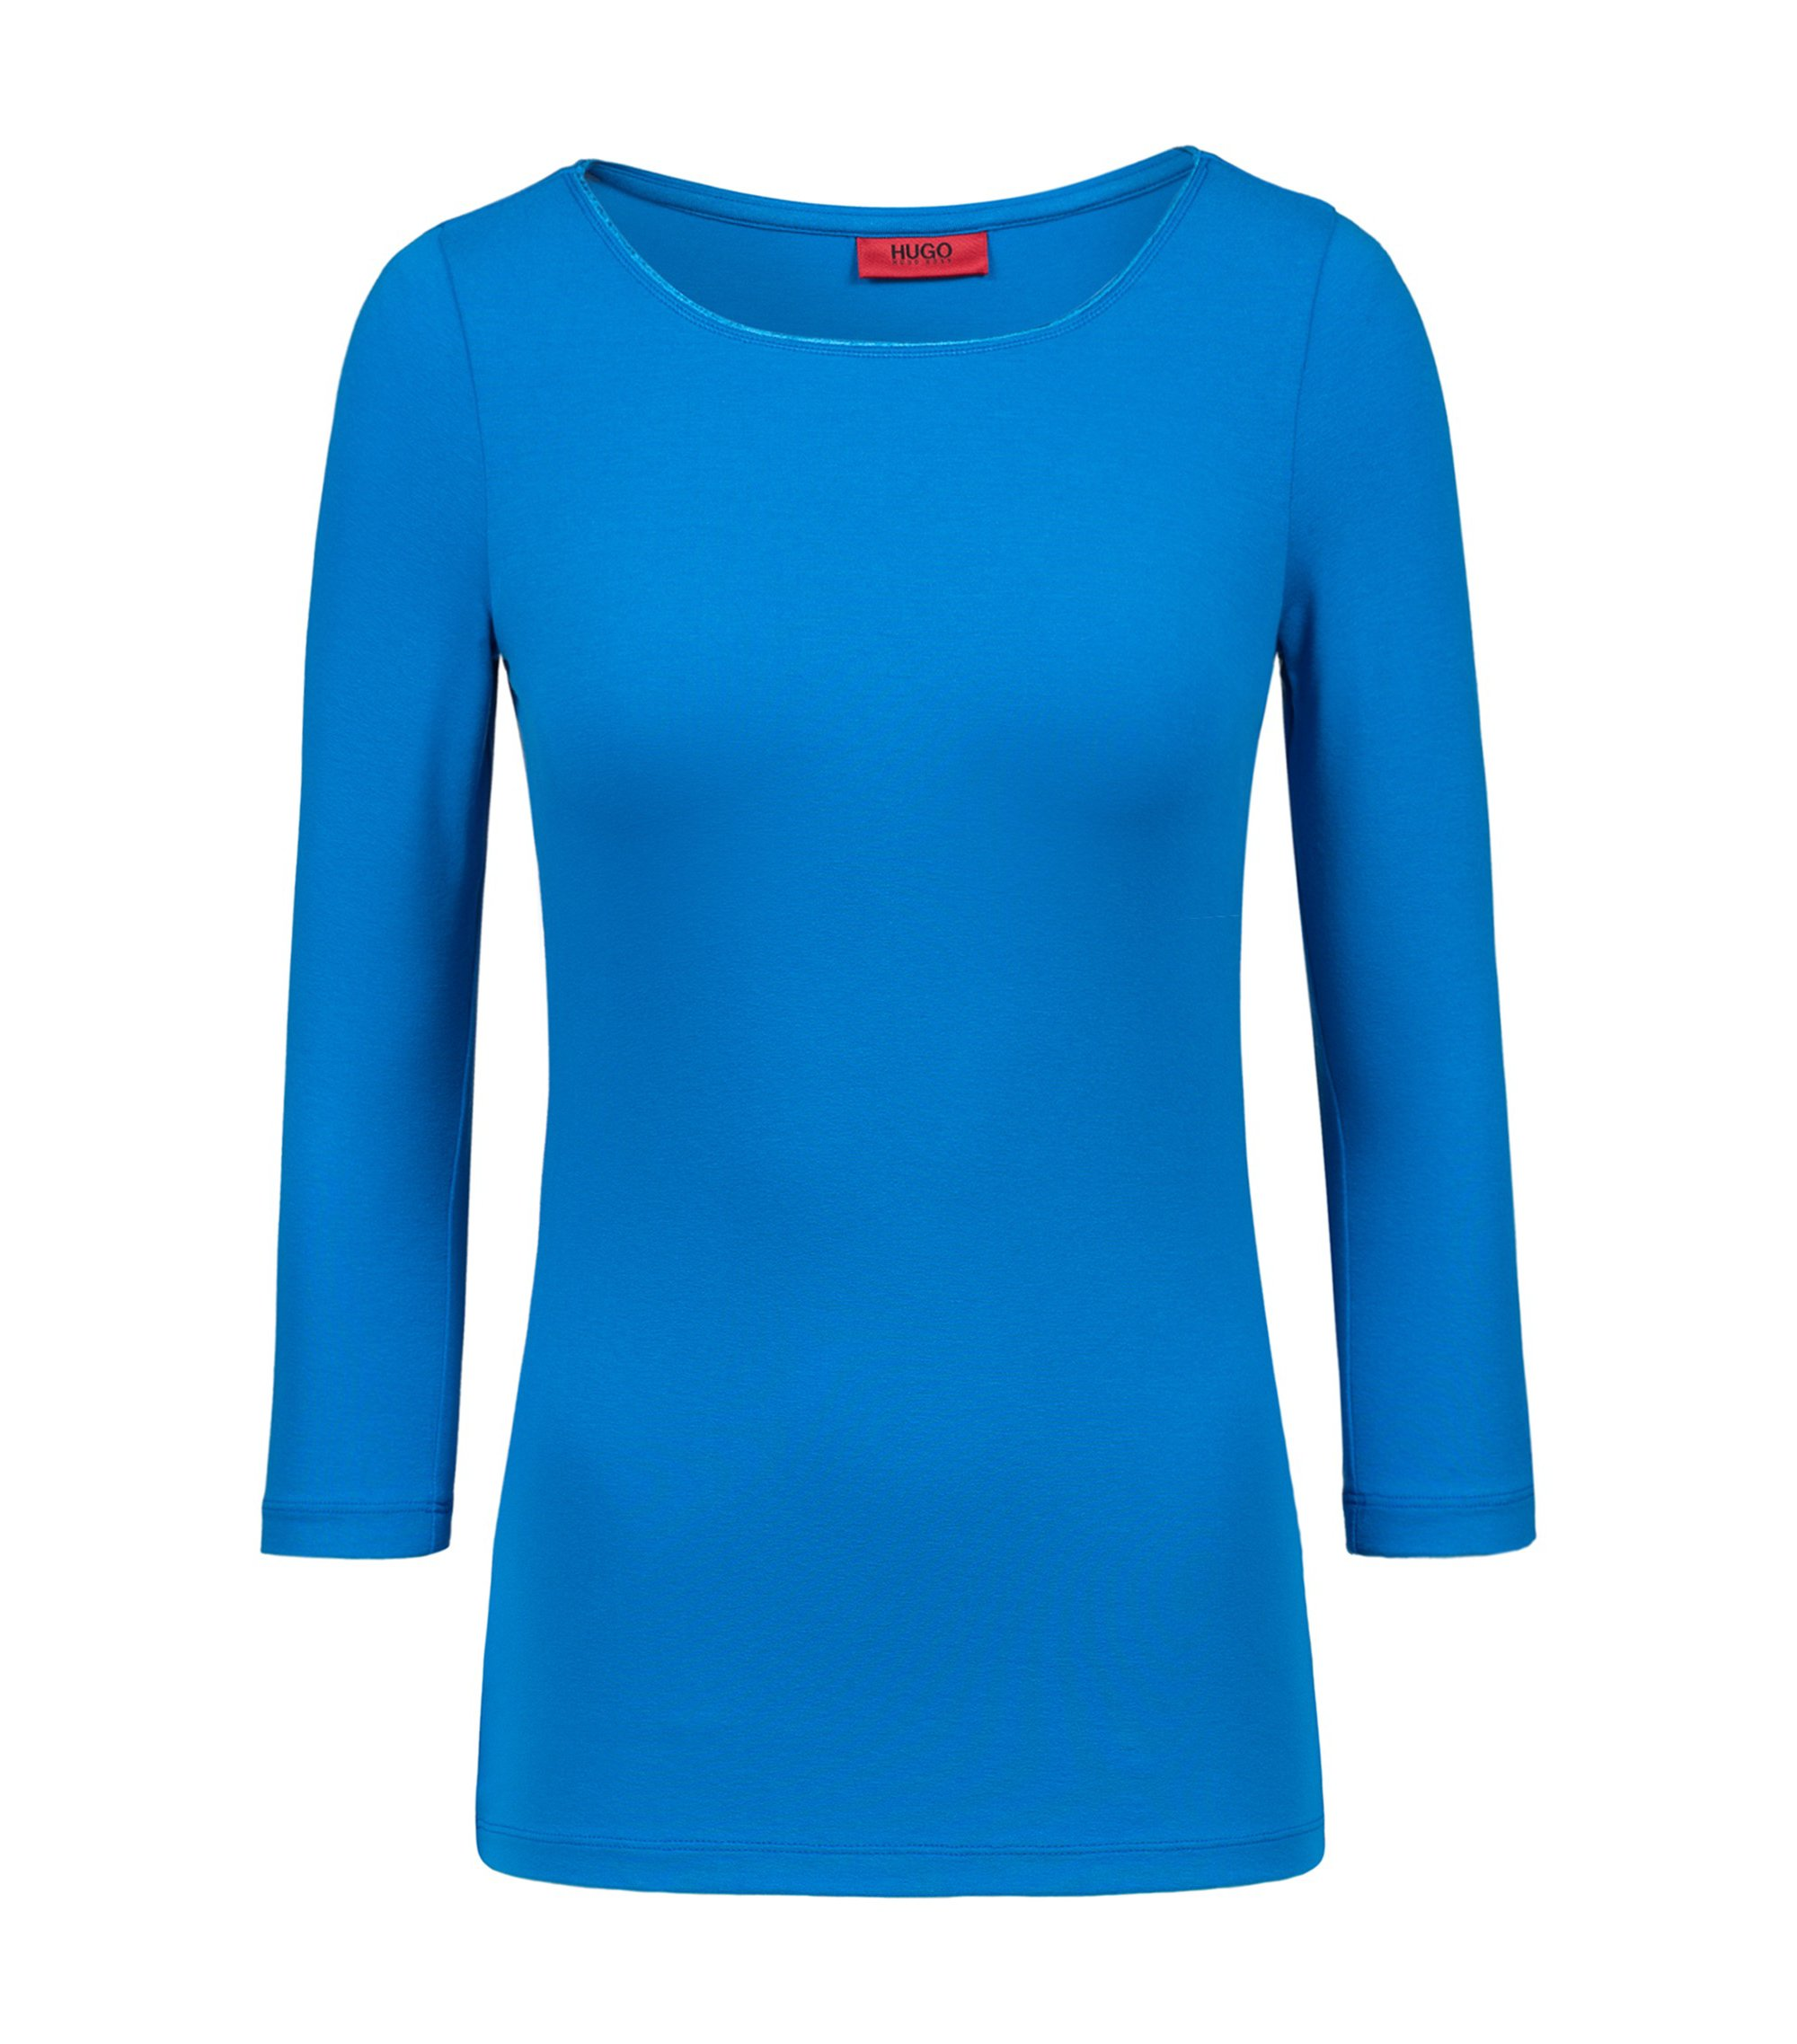 Slim-Fit T-Shirt aus Single Jersey mit U-Boot-Ausschnitt, Blau